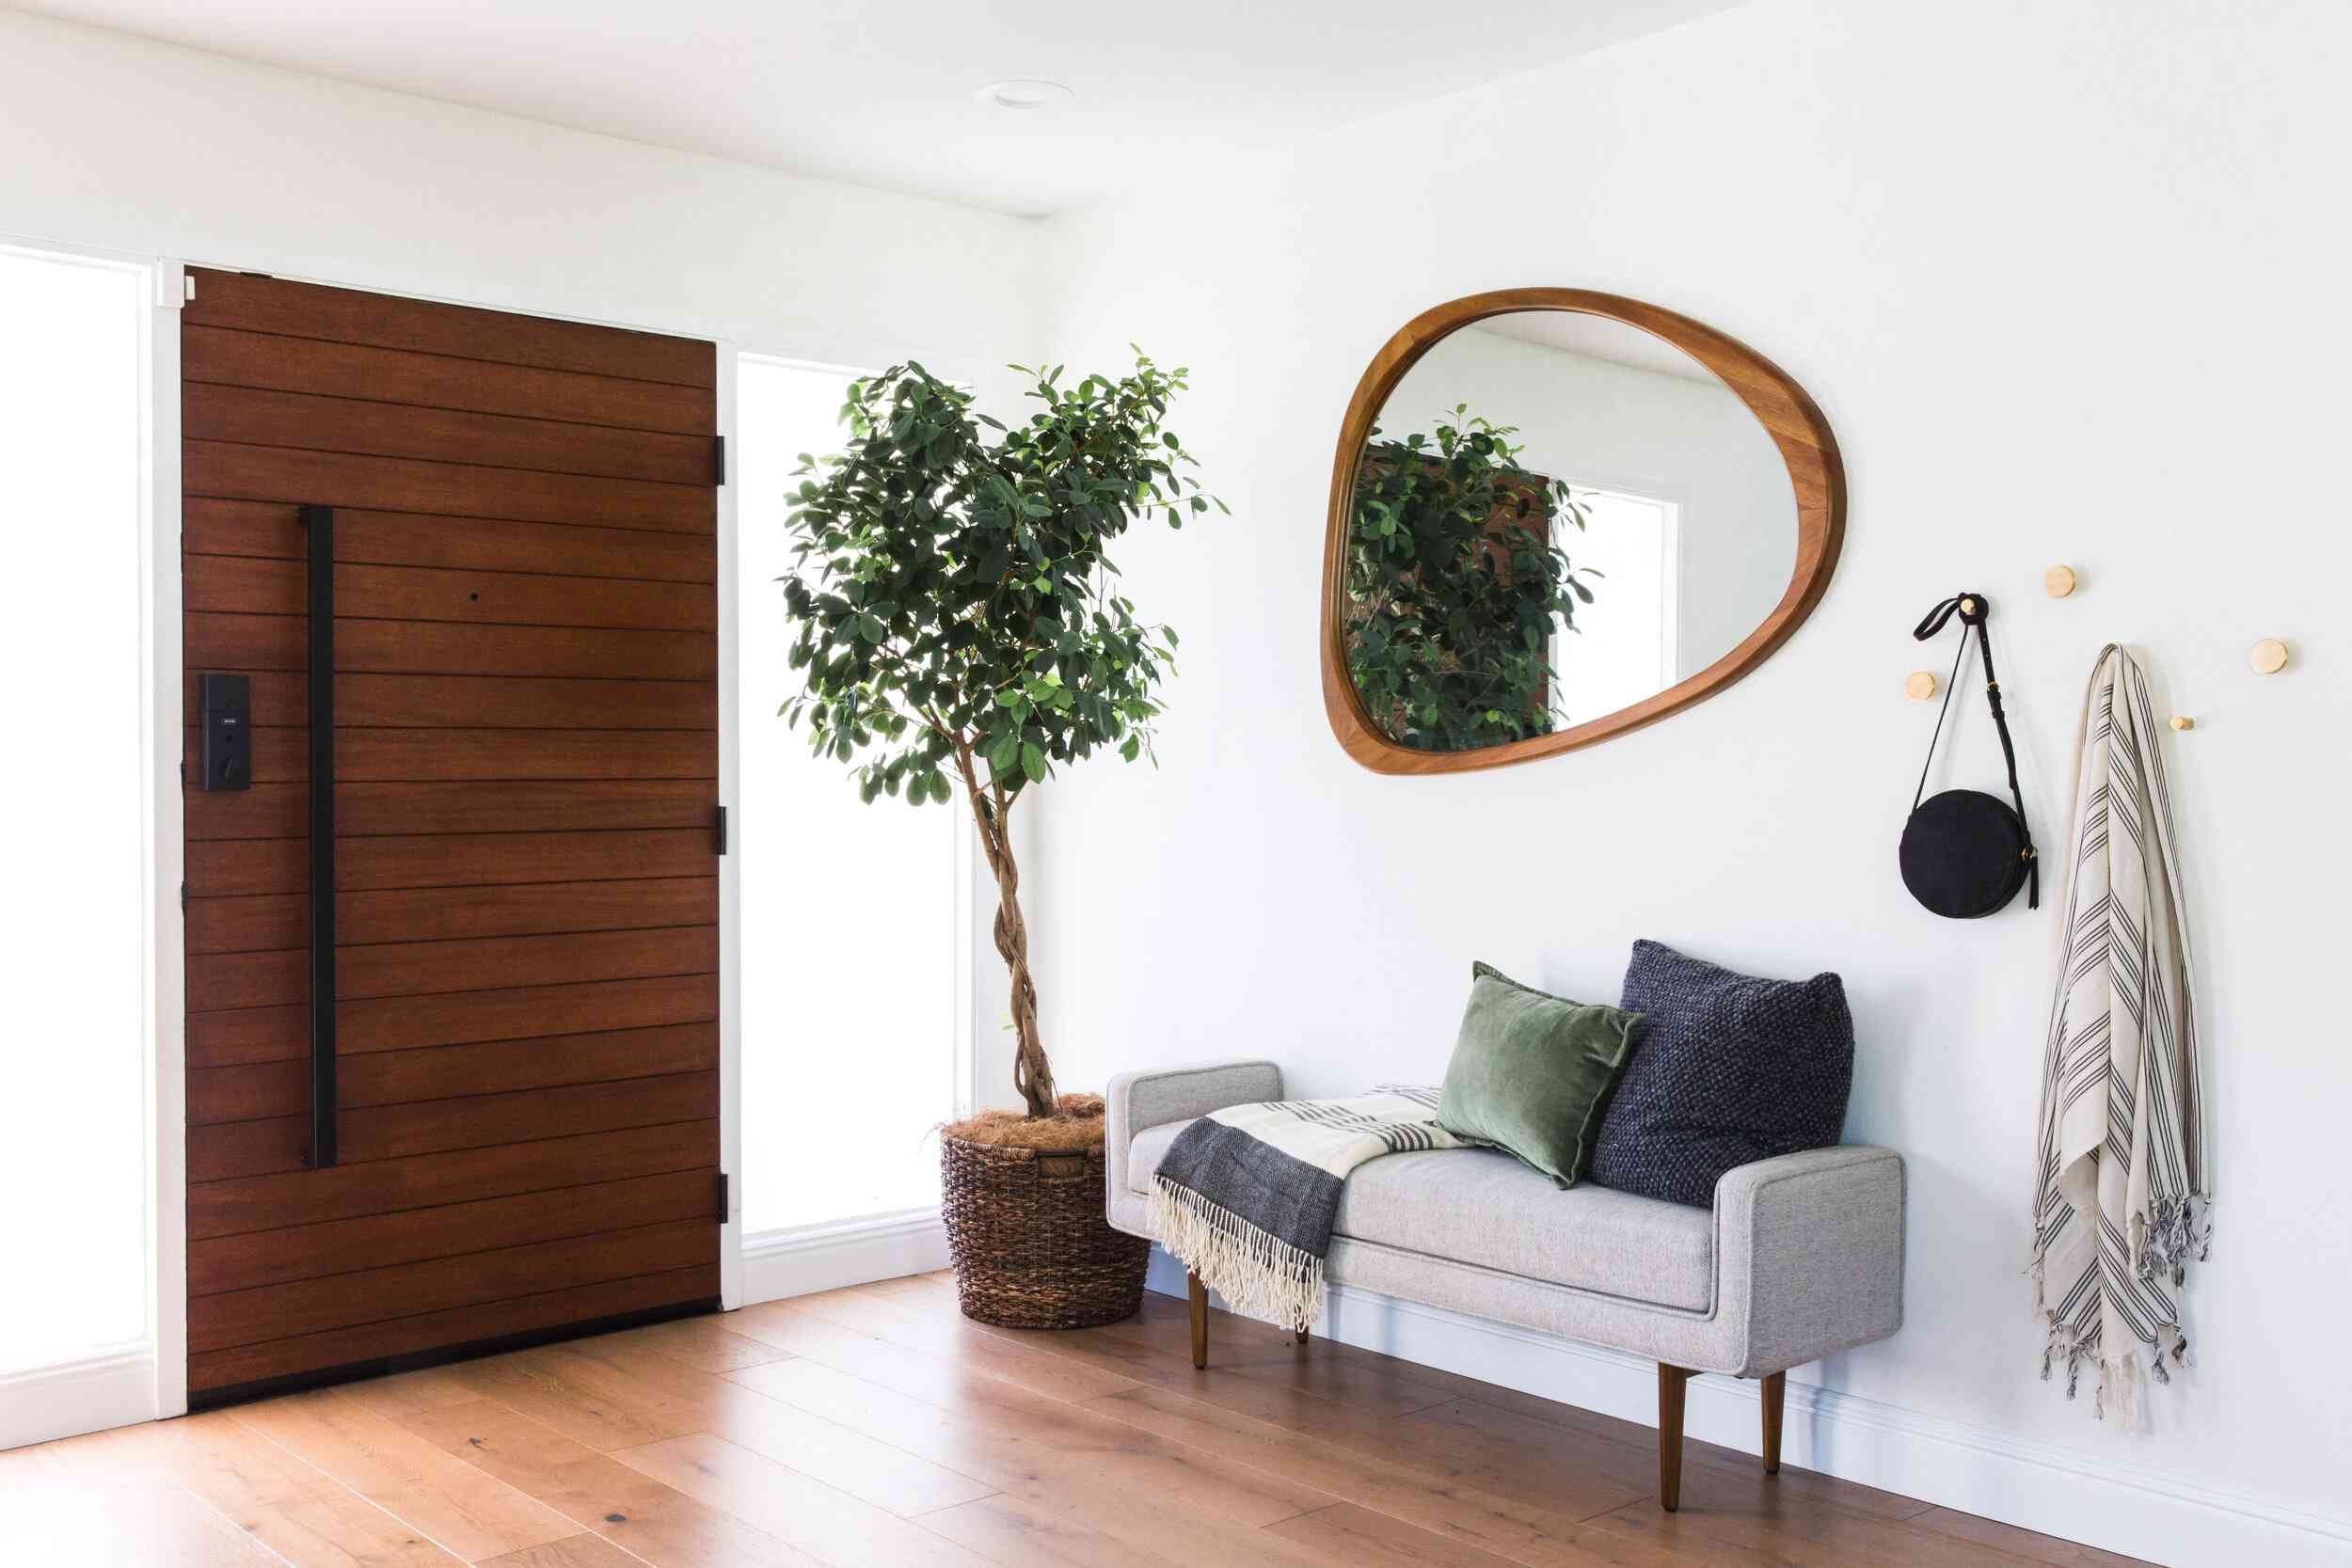 Weeping fig in a modern entryway next to an upholstered bench